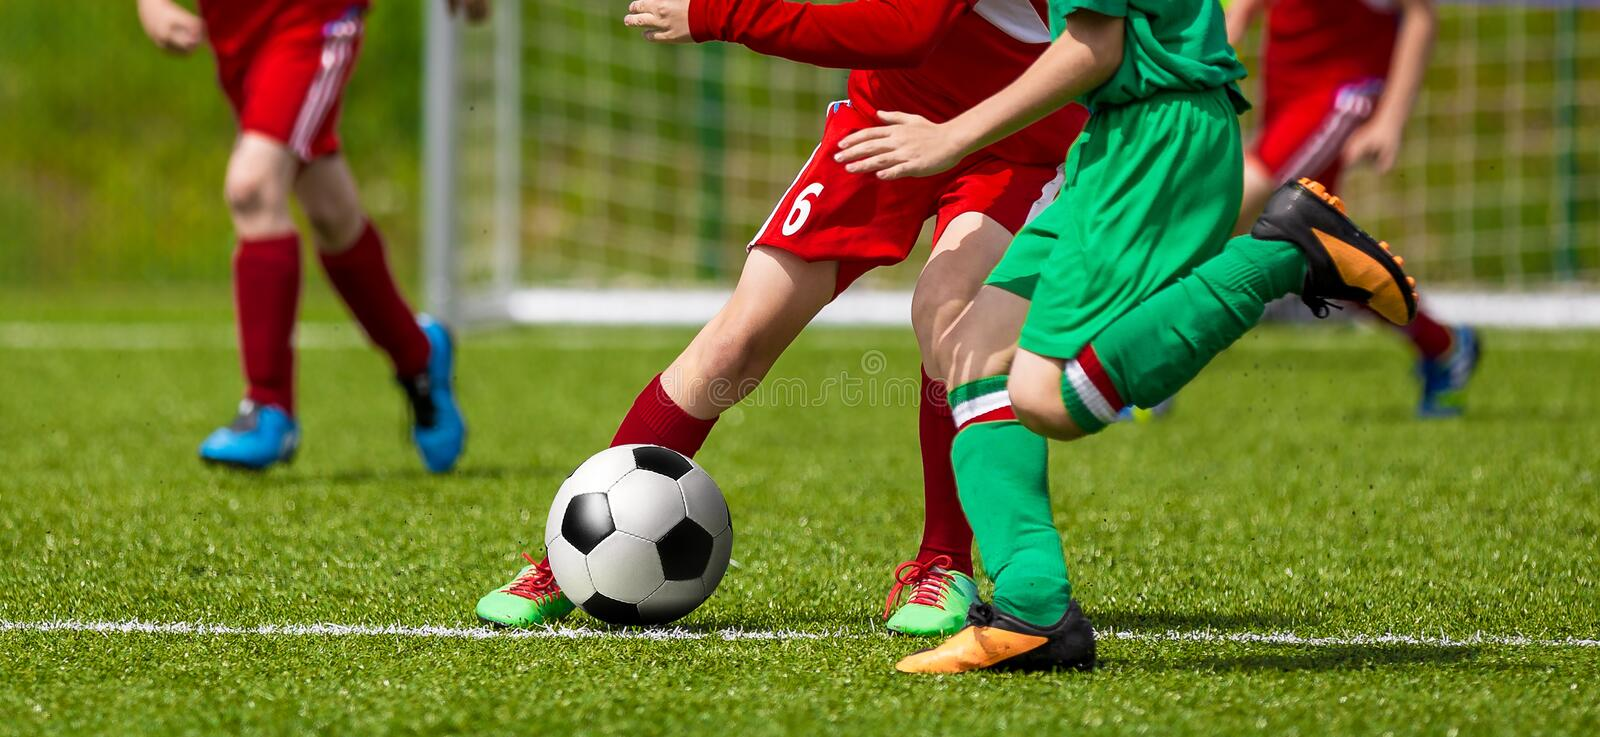 Running Young Soccer Football Players. Footballers Kicking Football Match Game. Youth Soccer Players Running the Ball. Soccer Teams School Tournament royalty free stock image